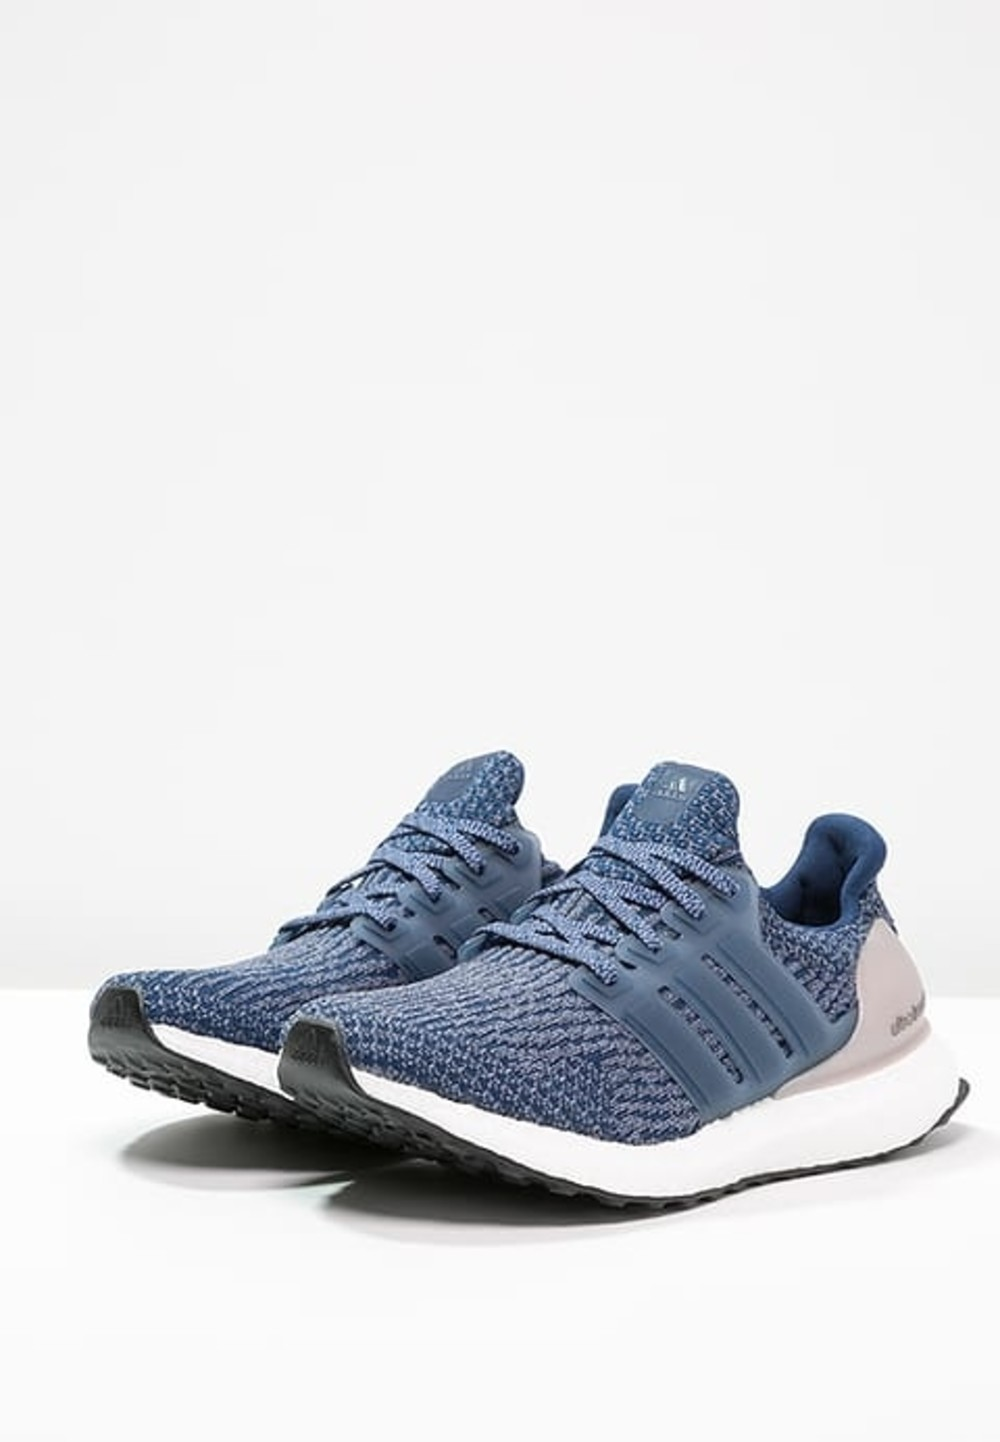 Adidas Ultra Boost 3.0 'Mystery Blue' Releases In Sneakers Sale